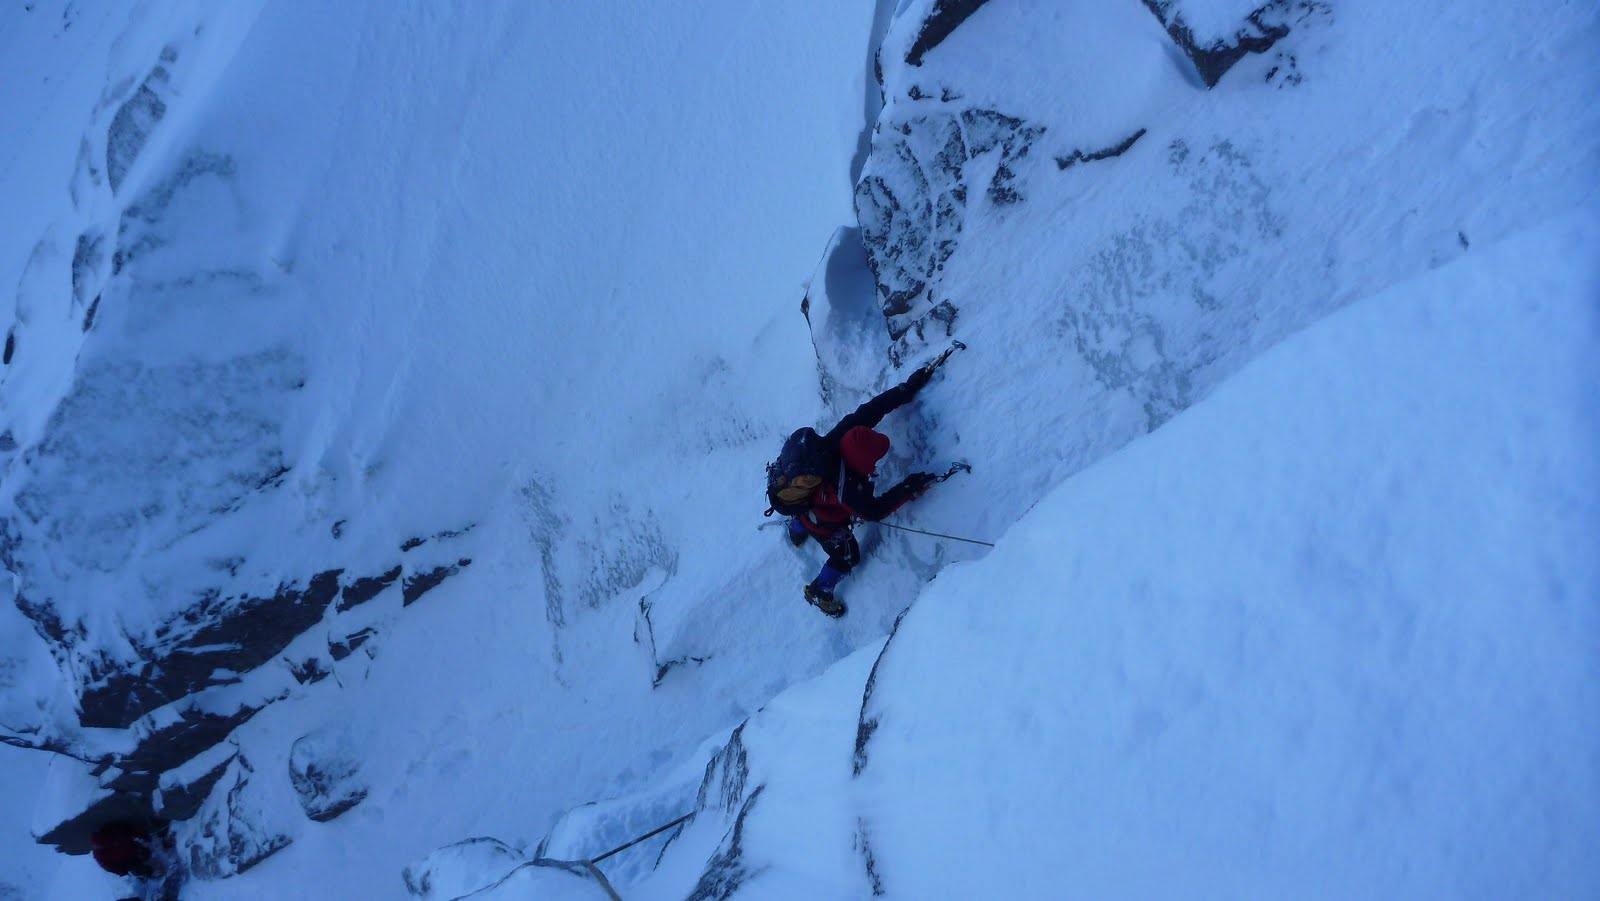 Great conditions on Pateys Route, 100 kb